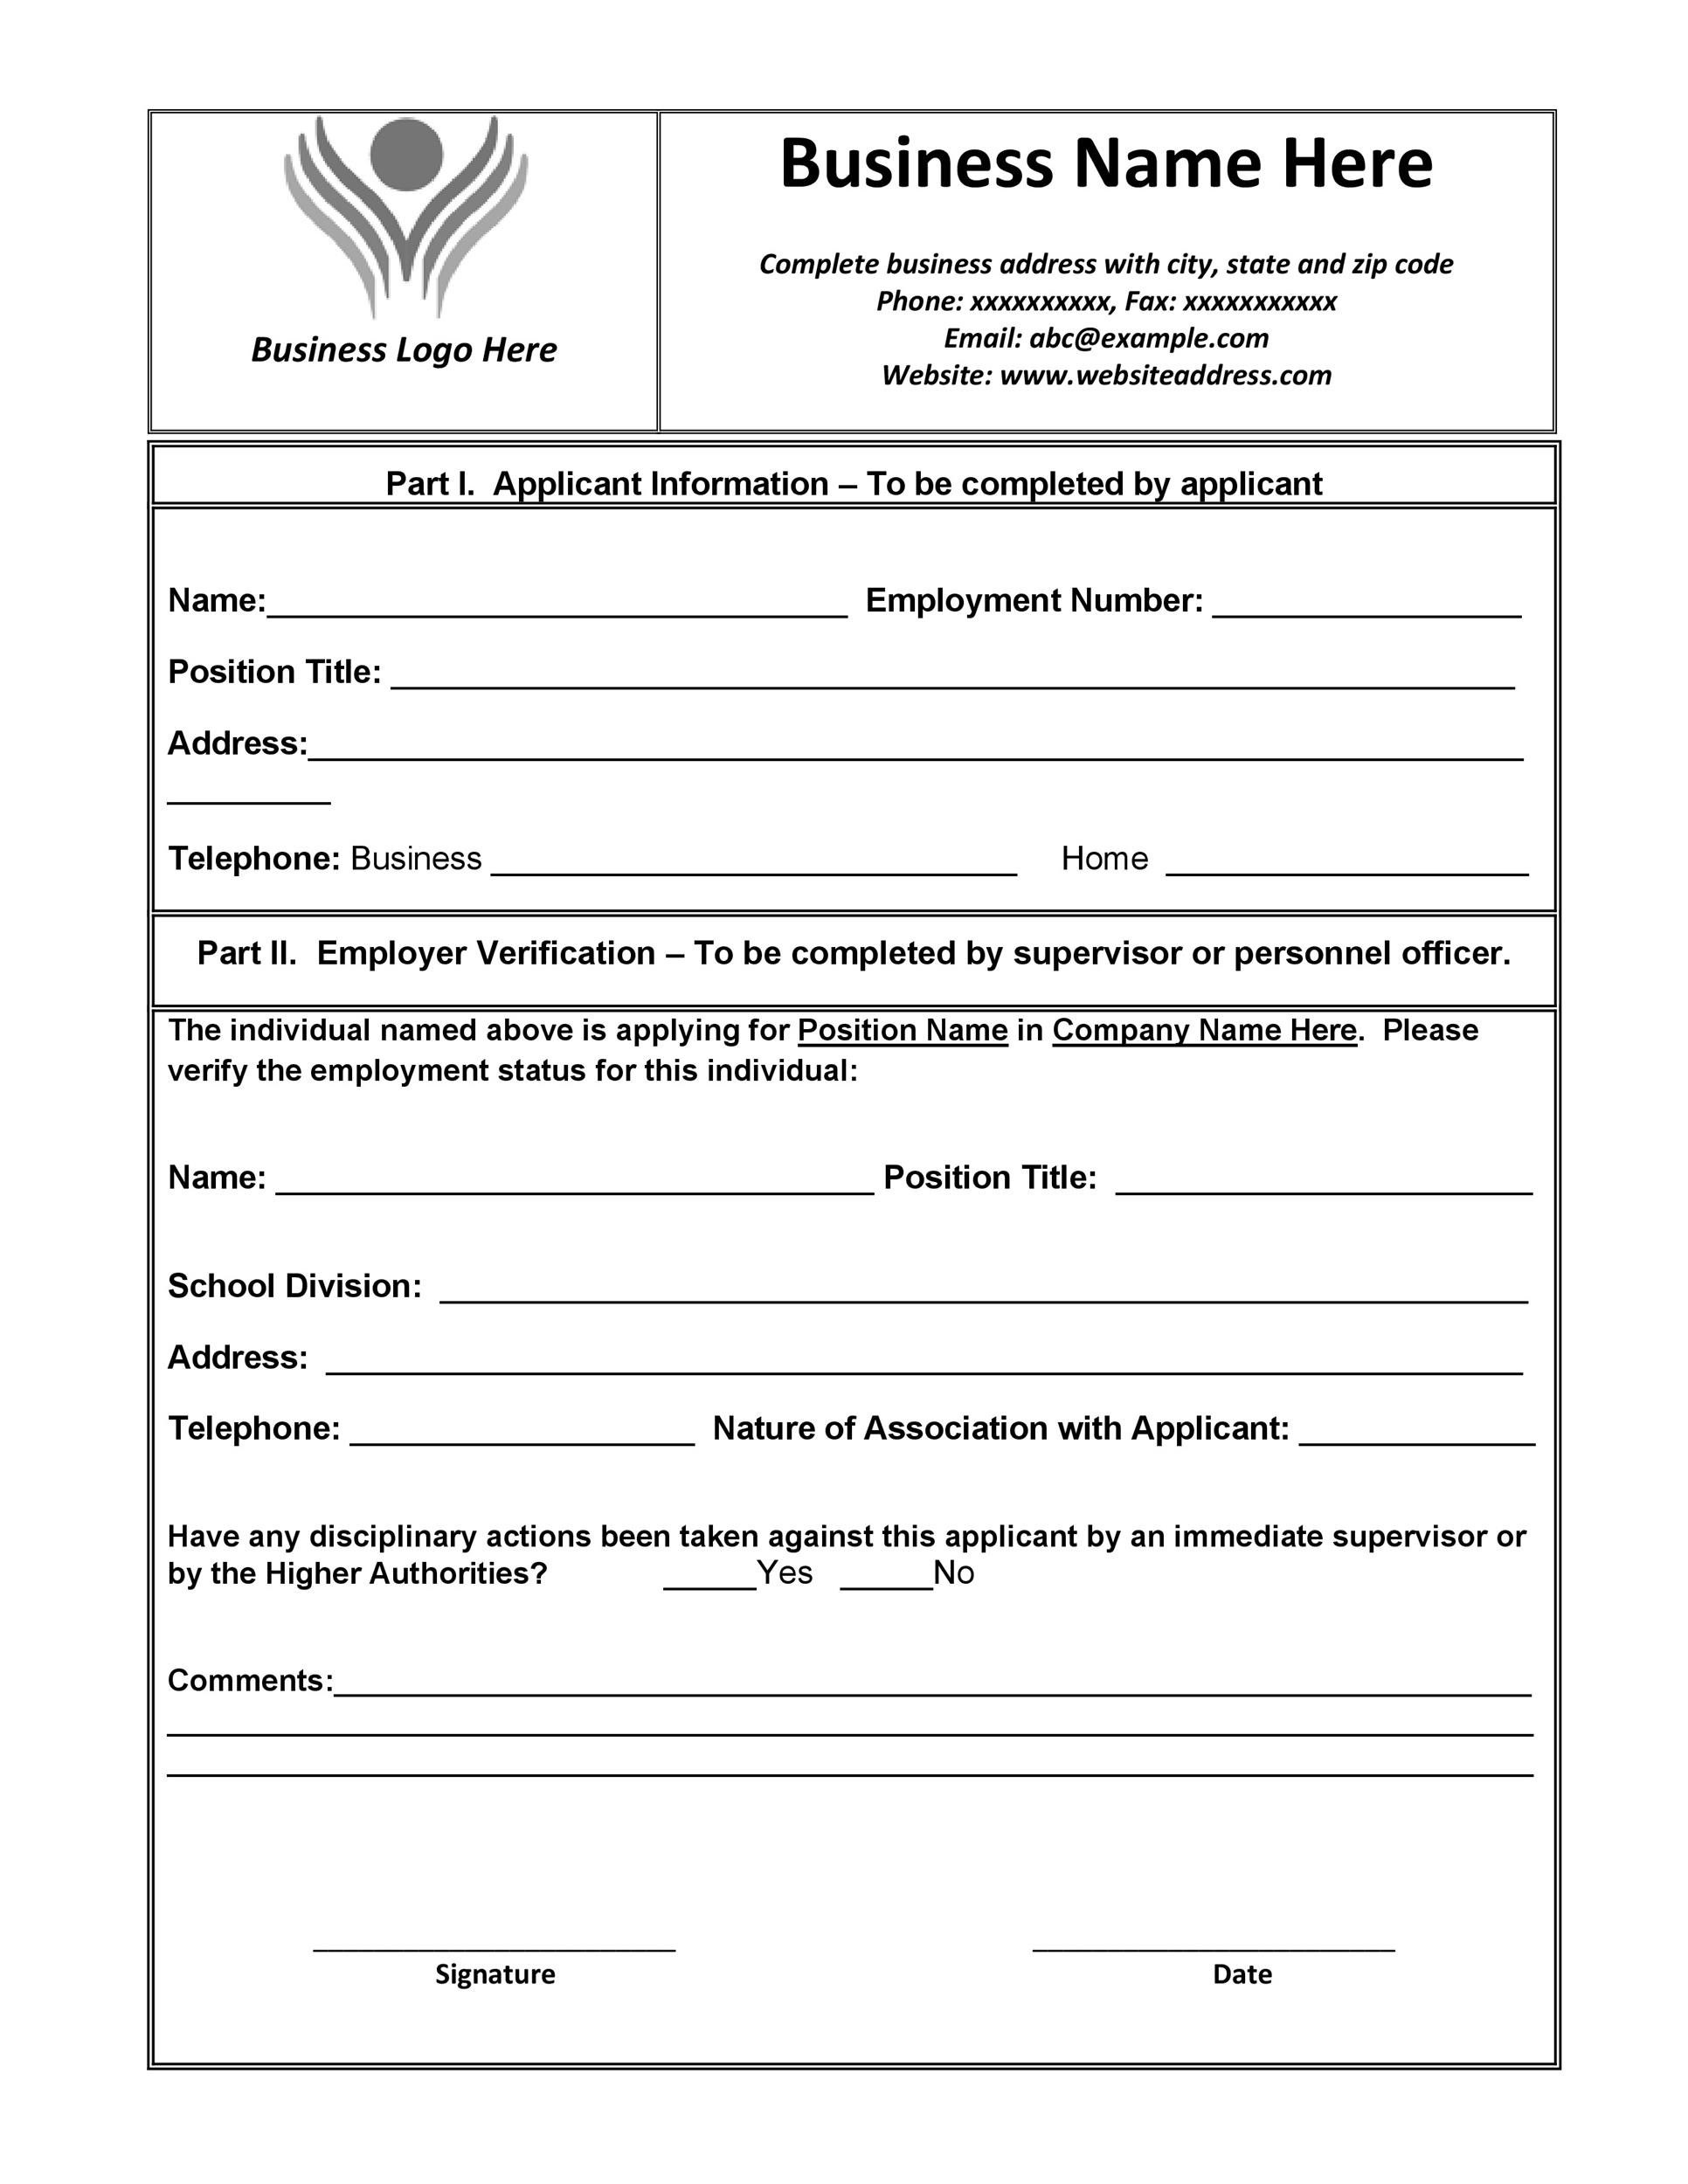 Proof Of Employment Letters Verification Forms Samples - Offer of employment letter template free